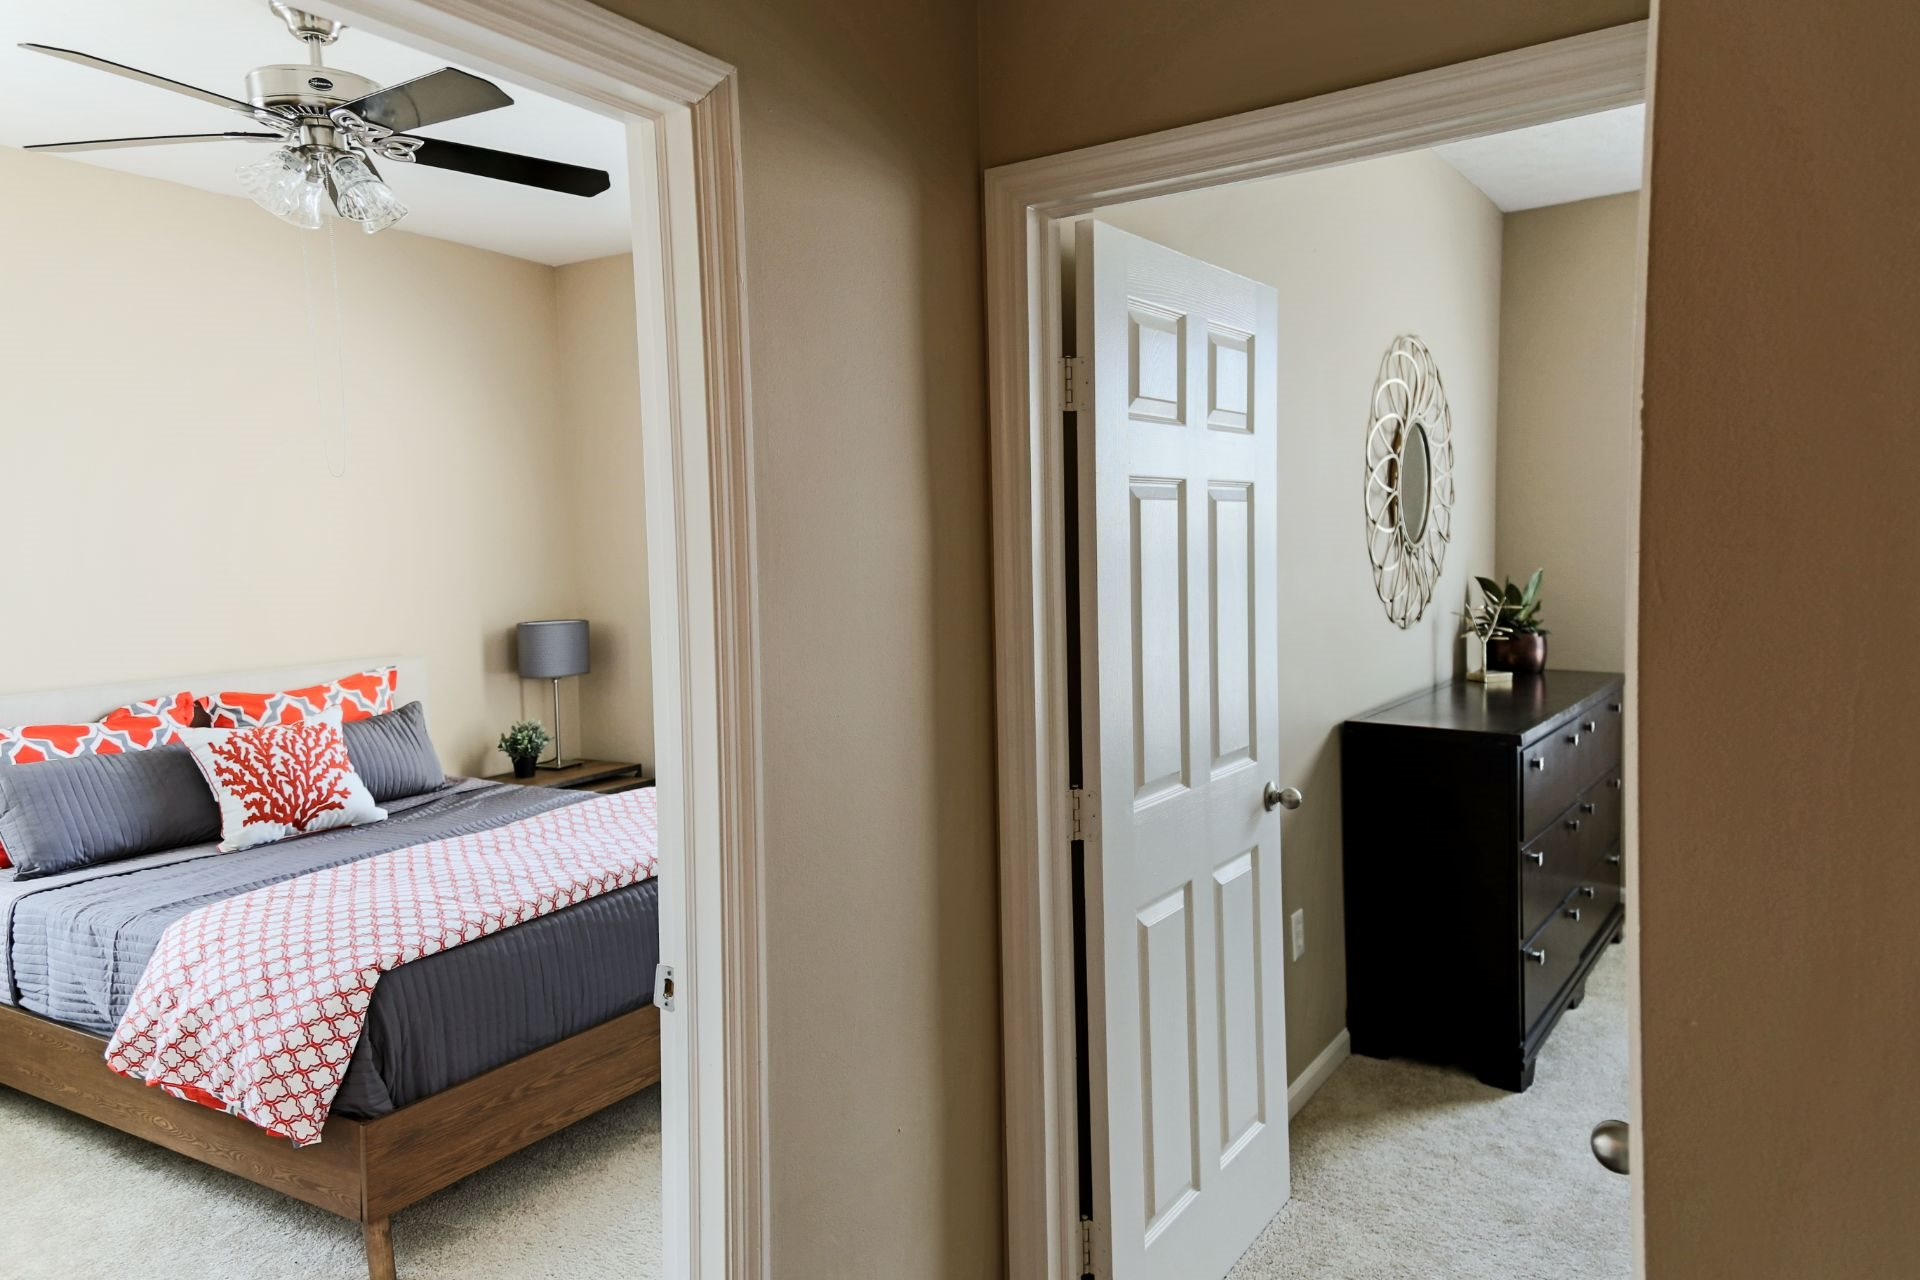 Pet Friendly 1, 2 and 3 Bedroom Apartments and Townhomes in West Chester OH with Open Concept Living, Large Bedrooms and Closets and Private Balcony or Patio--The Preserve at Beckett Ridge Apartments and Townhomes-2515 Fox Sedge Way, West Chester OH 45069